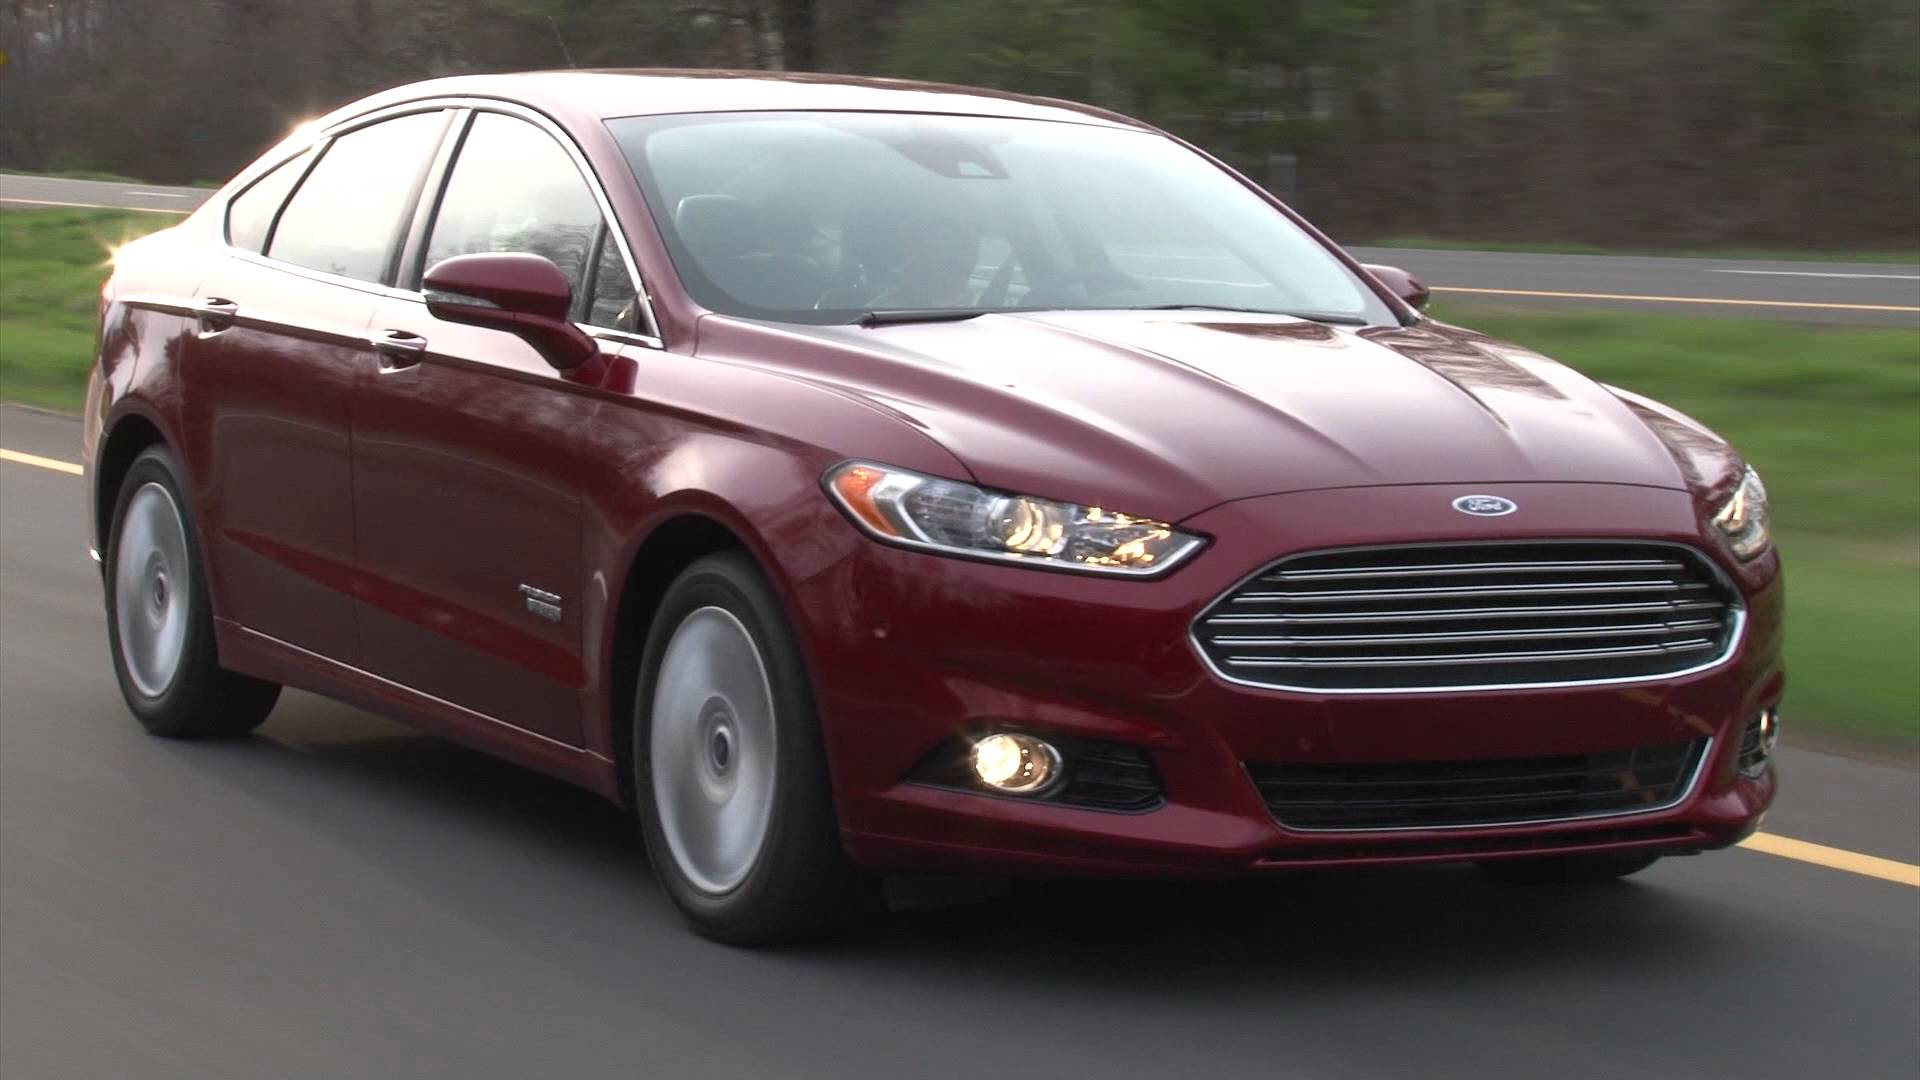 2013 Ford Fusion Background